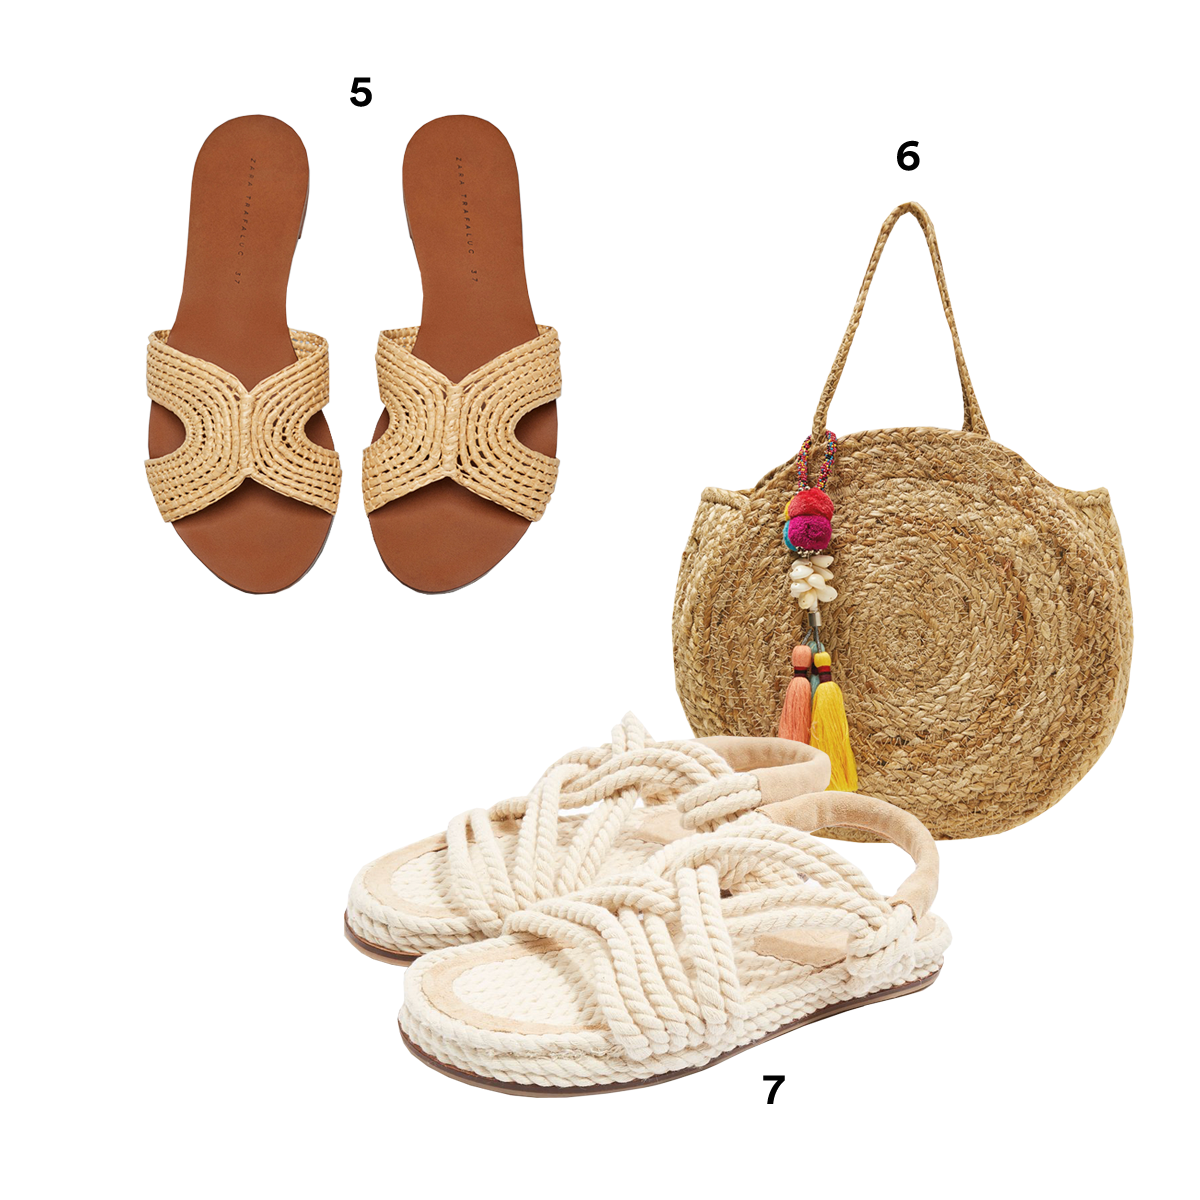 5.) ZARA Flat Natural Sandals. 6.) ZARA Round Raffia Bag with Pompoms. 7.) TOPSHOP Fiesta Flat Rope Sandals.